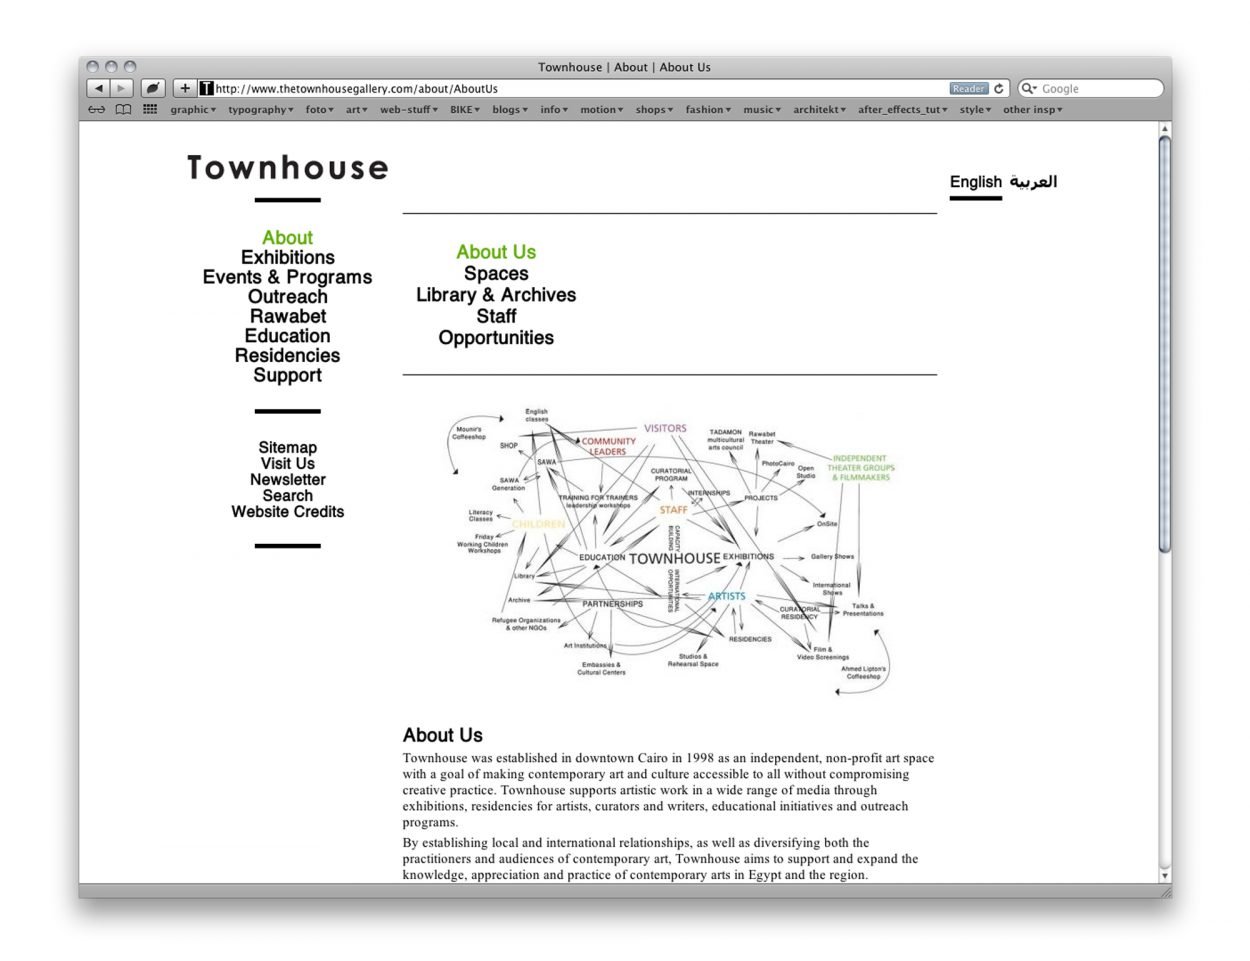 Eps51_Townhouse_02